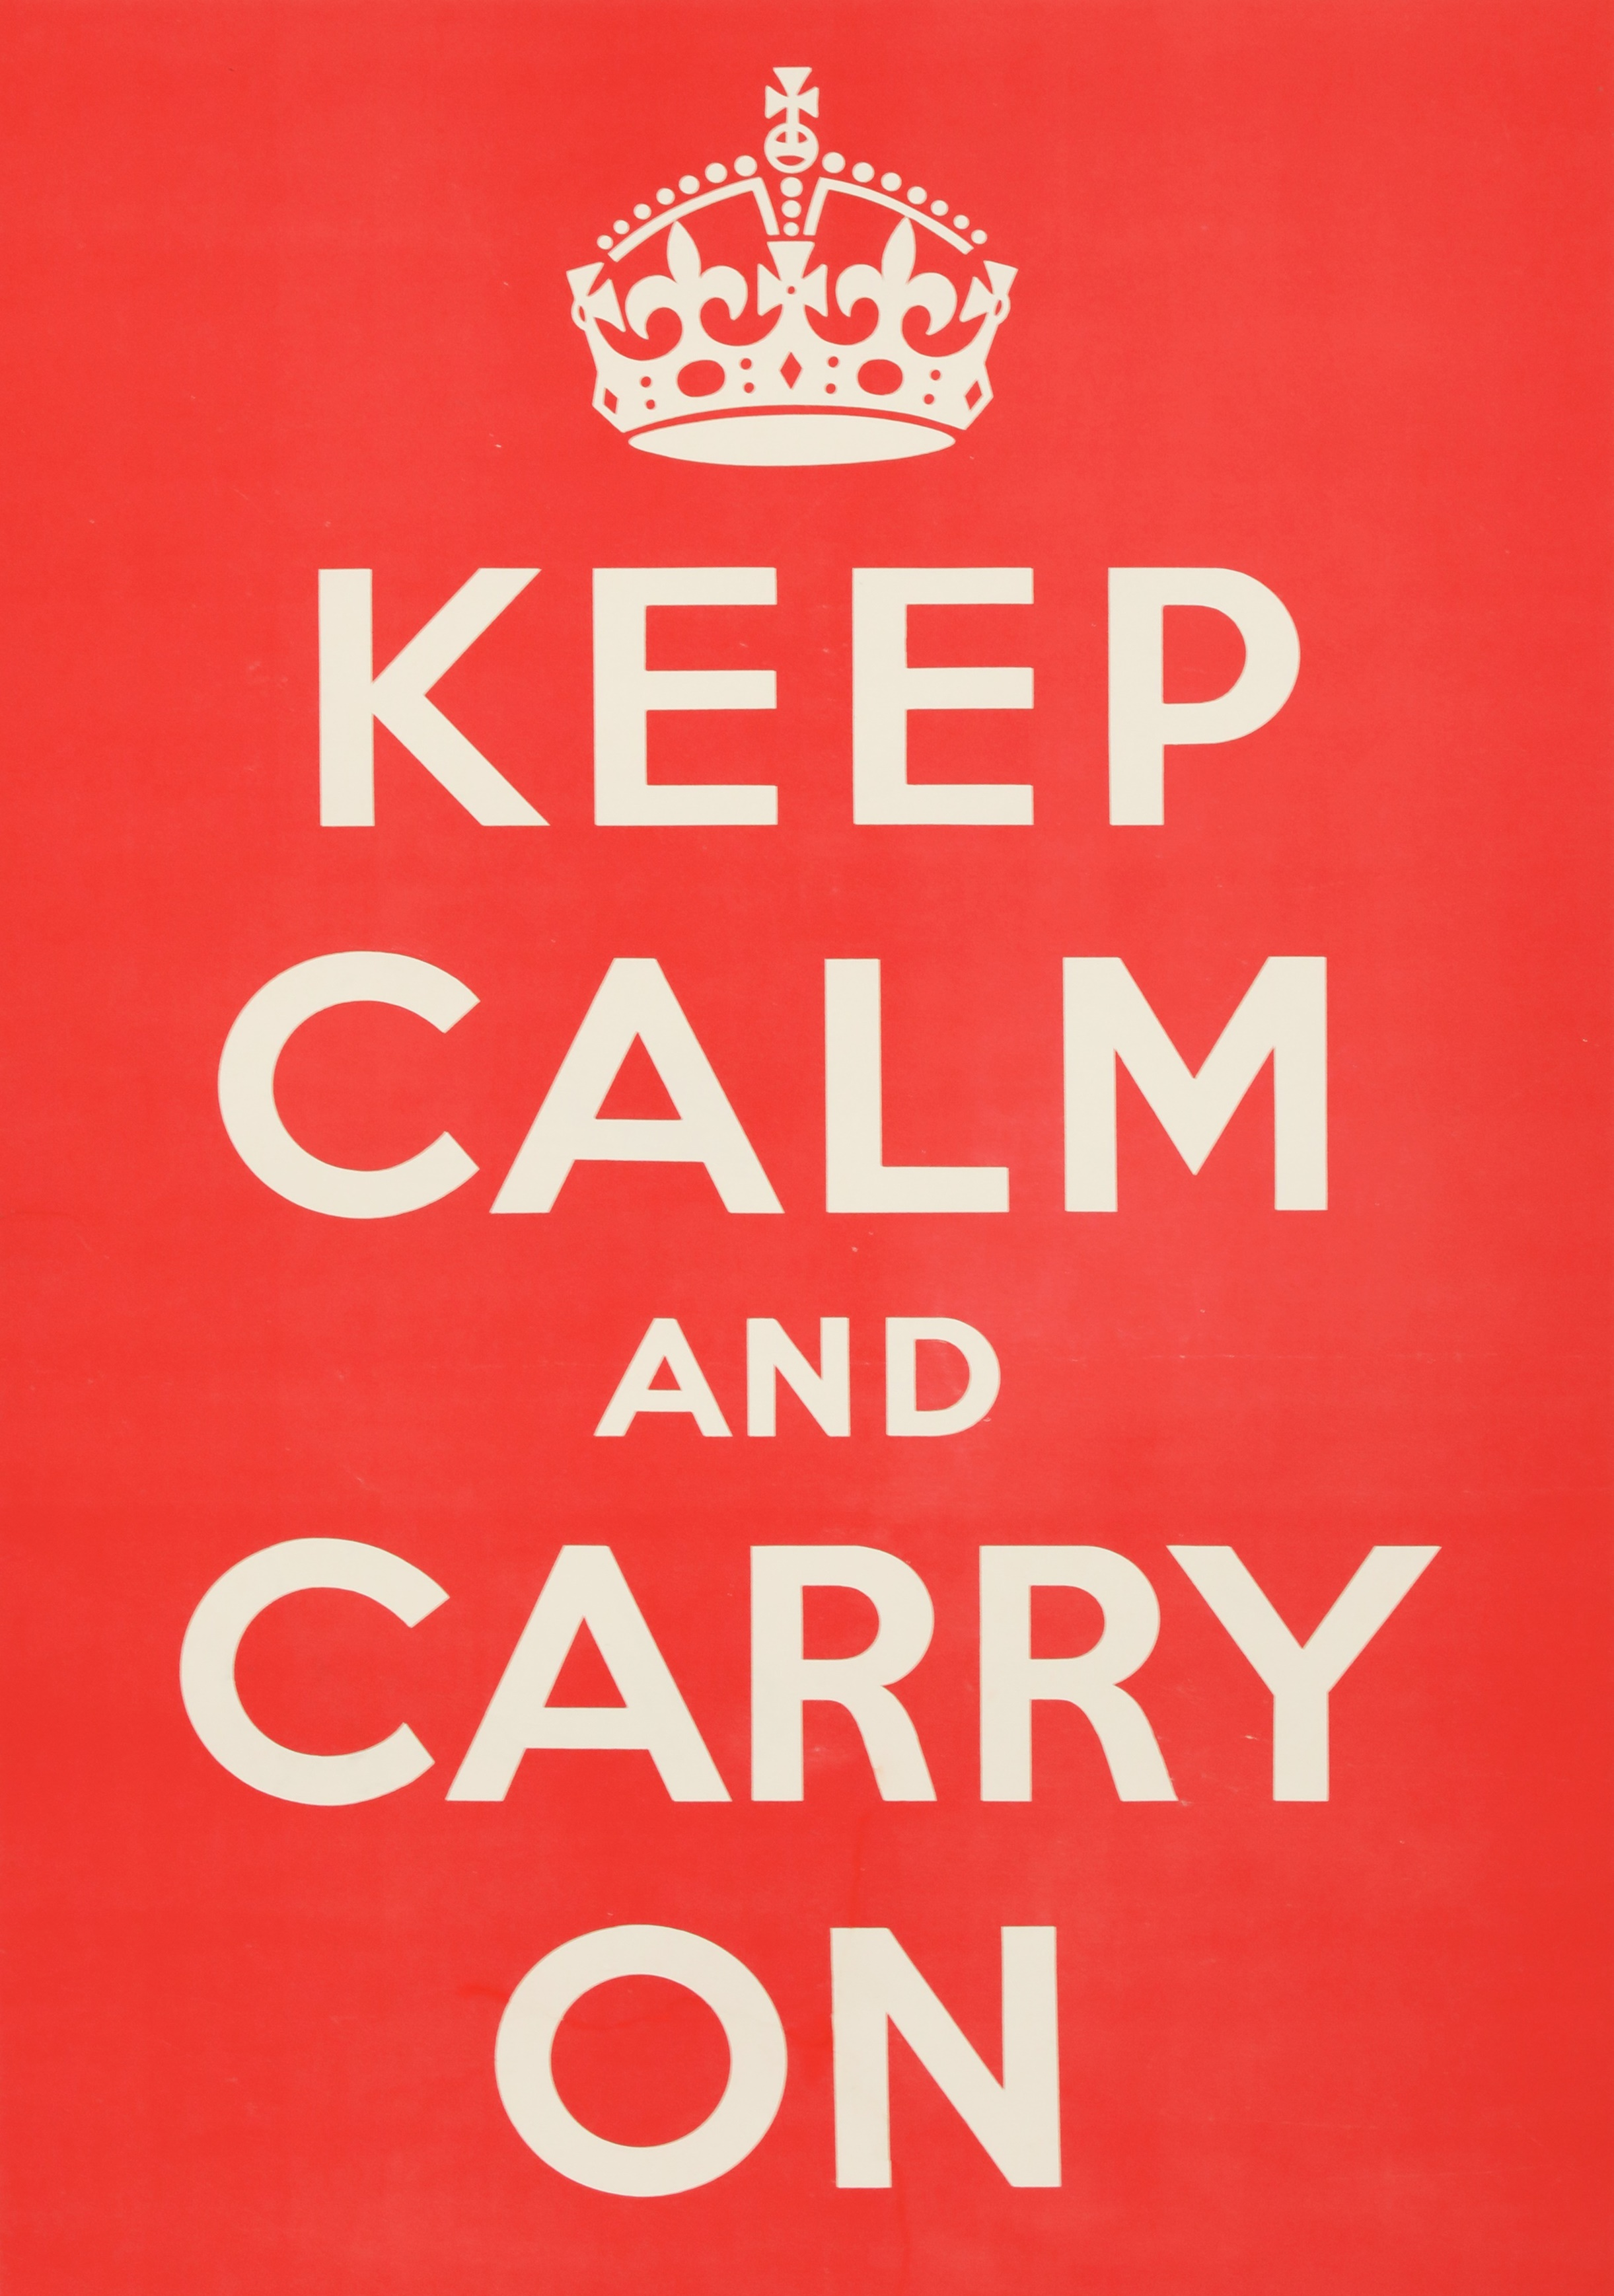 'KEEP CALM AND CARRY ON' a rare original WW2 poster red background with white lettering and crown, printed by HMSO, September 1939 74.8 x 50.5cm